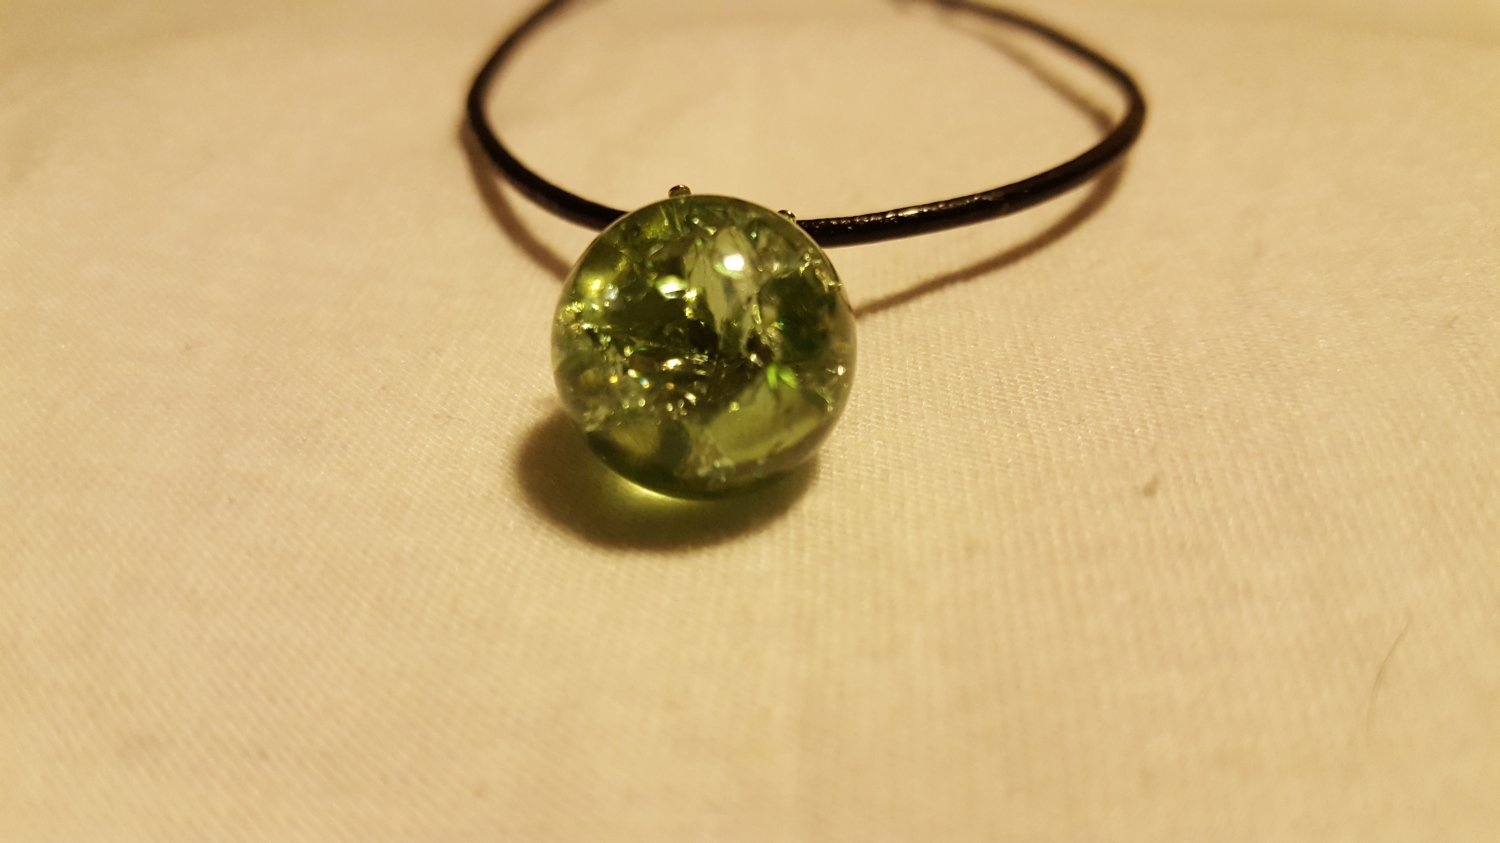 Green Cracked Marble on Leather Cord